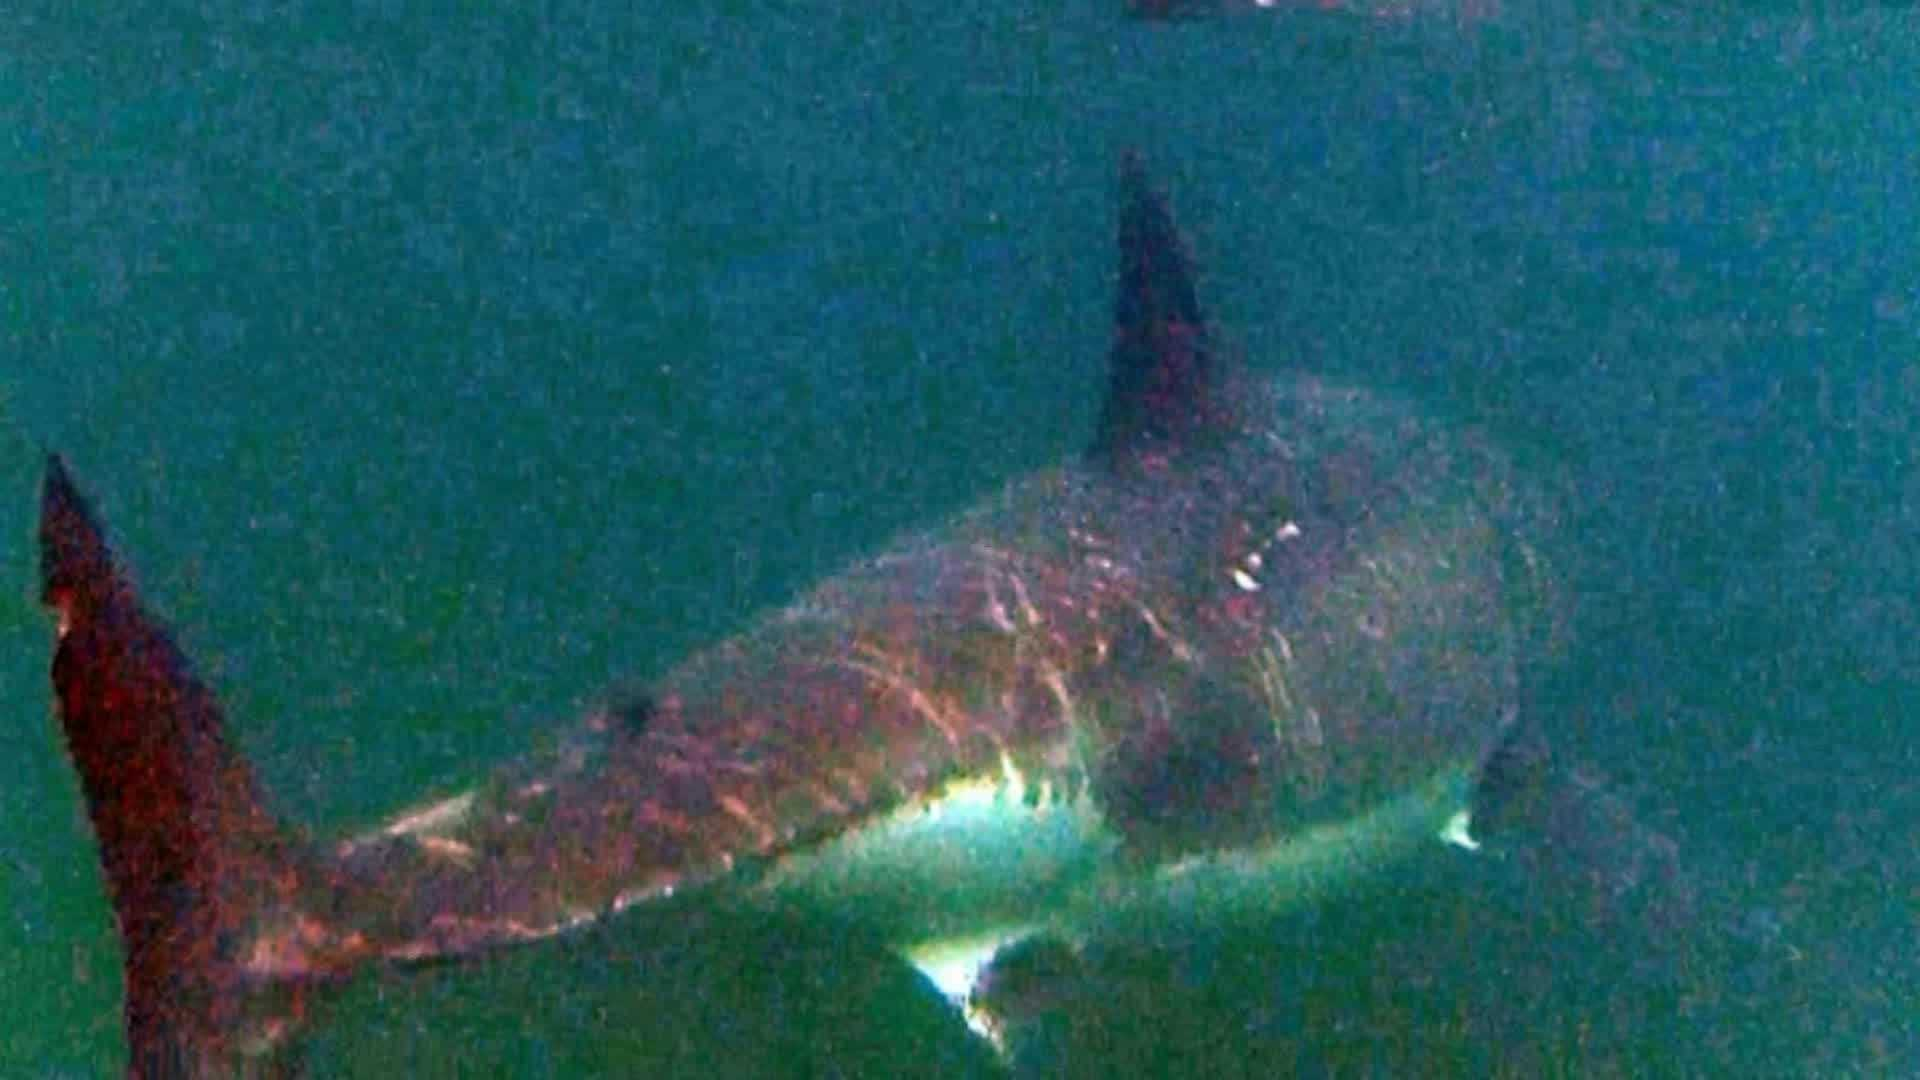 At least 10 great white sharks spotted off Cape Cod